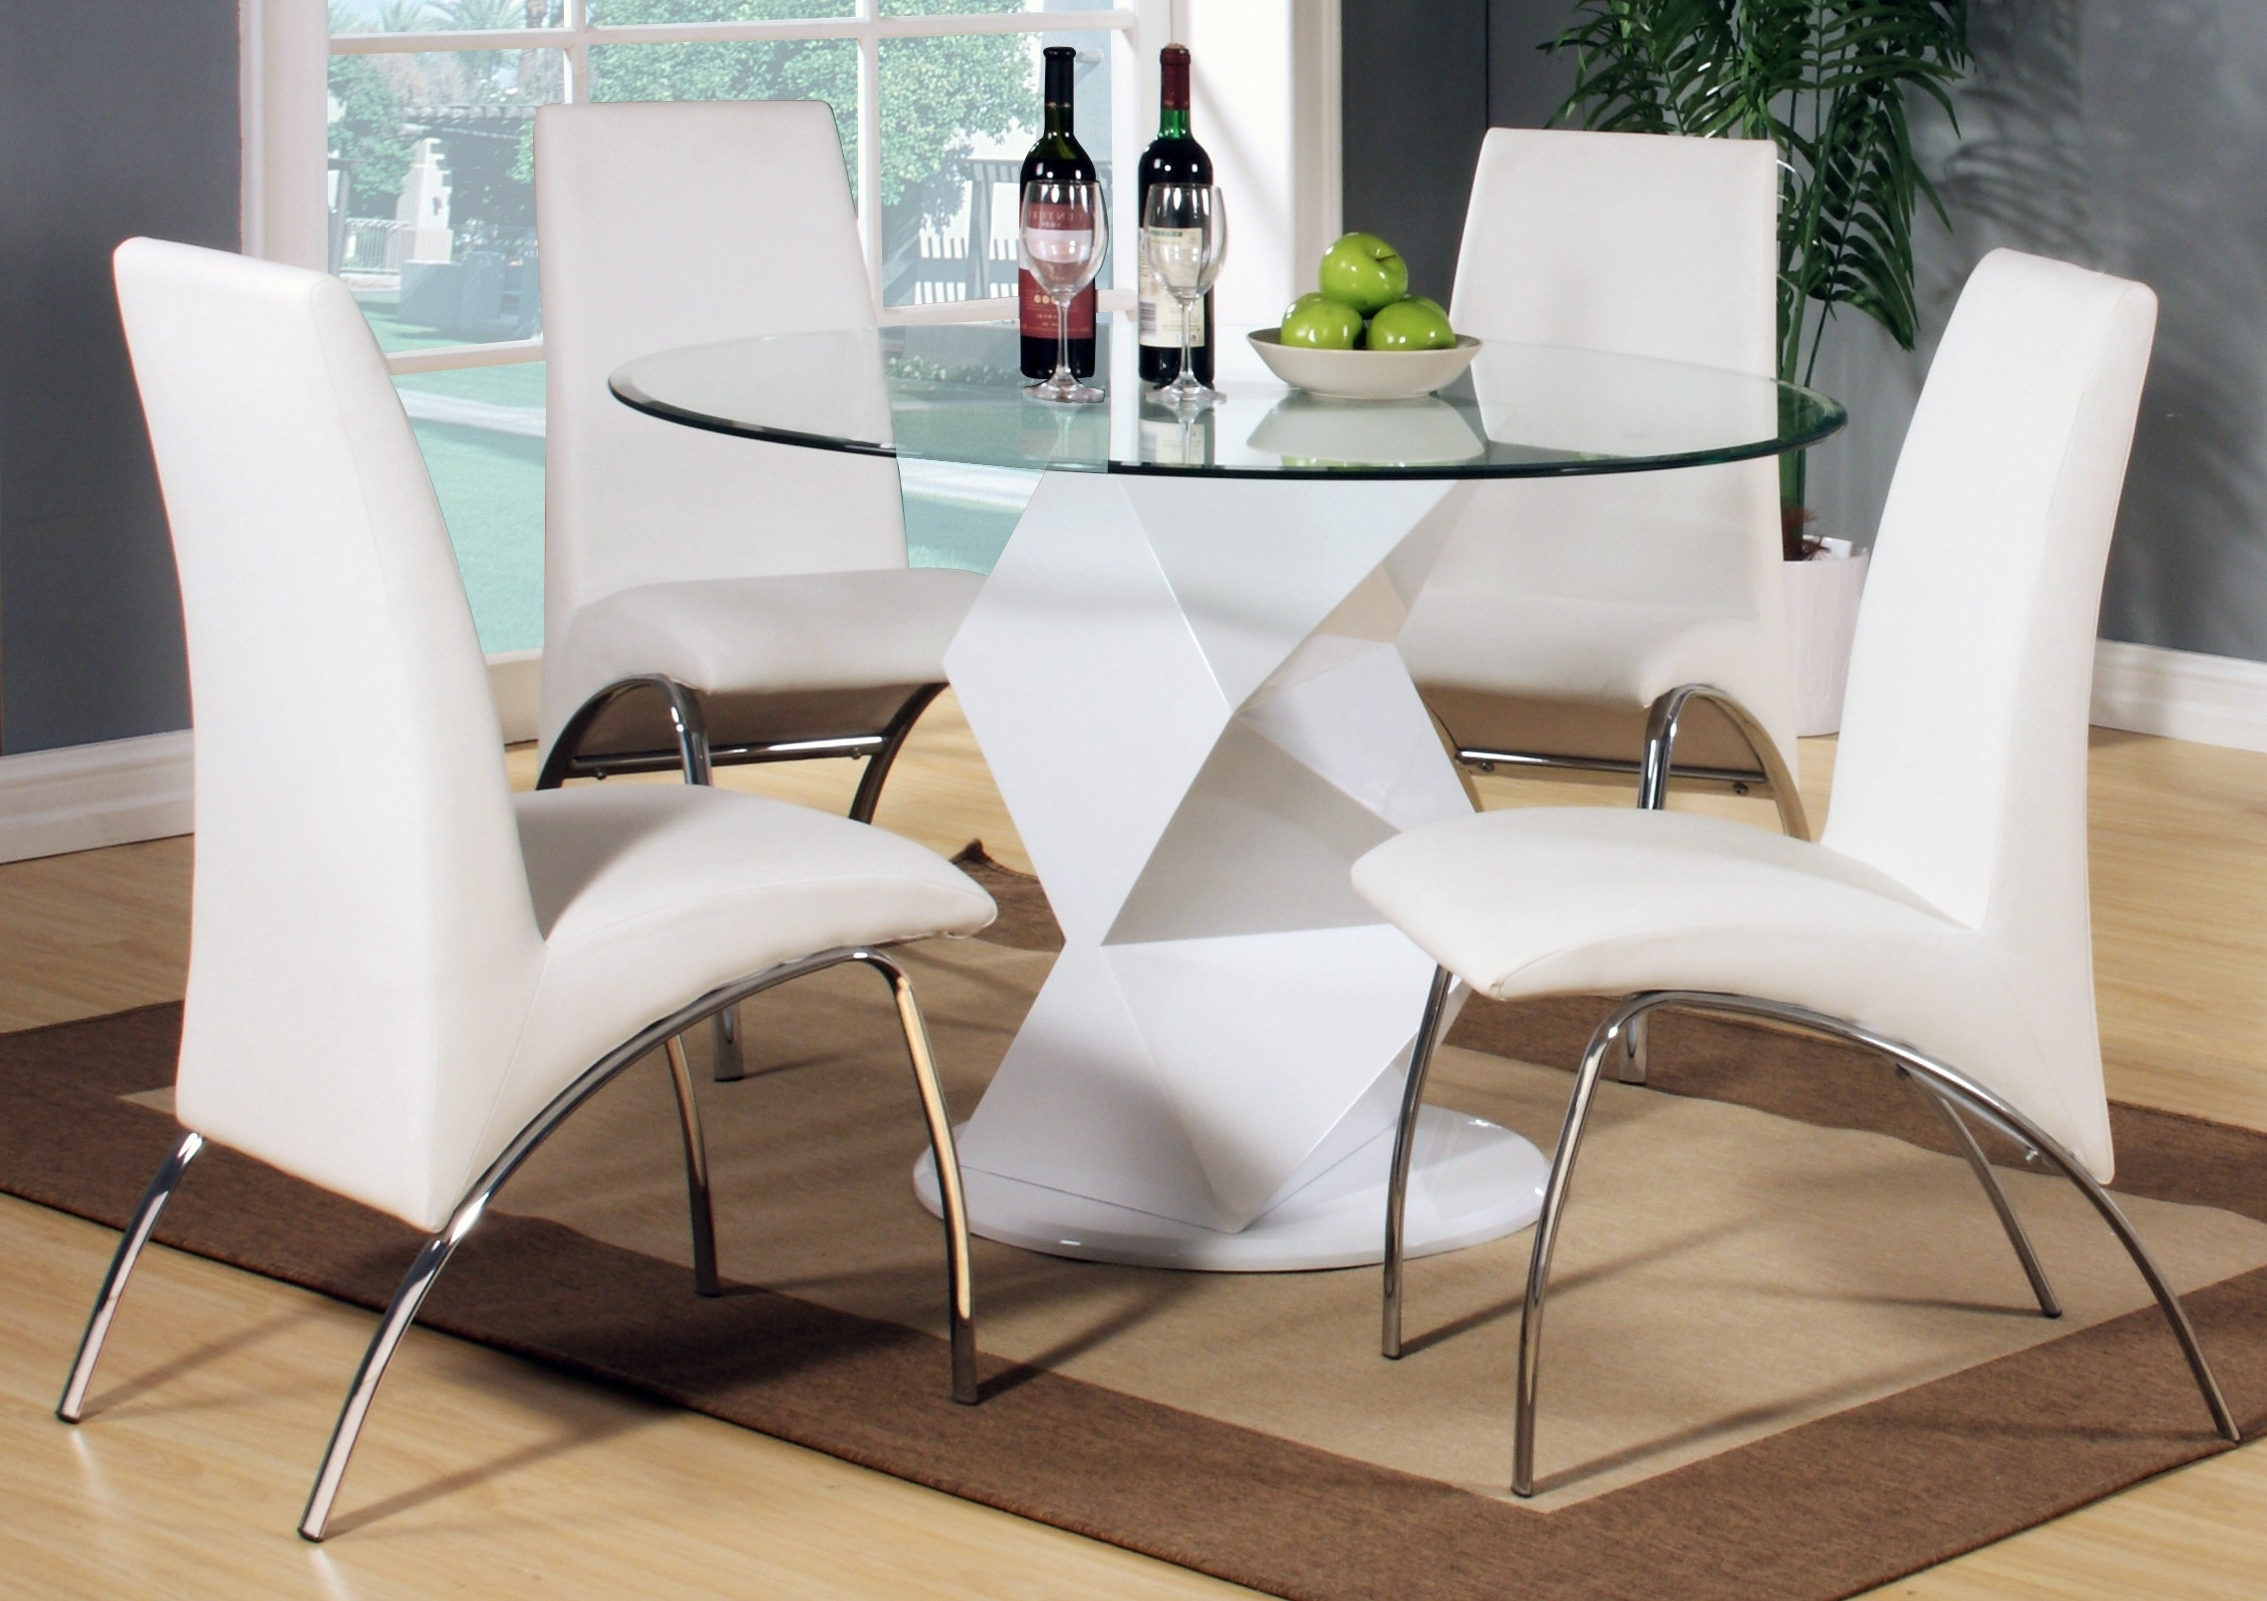 Well Known Finn White High Gloss Round Dining Table Set 4 Seater Regarding White High Gloss Dining Tables And 4 Chairs (View 15 of 25)